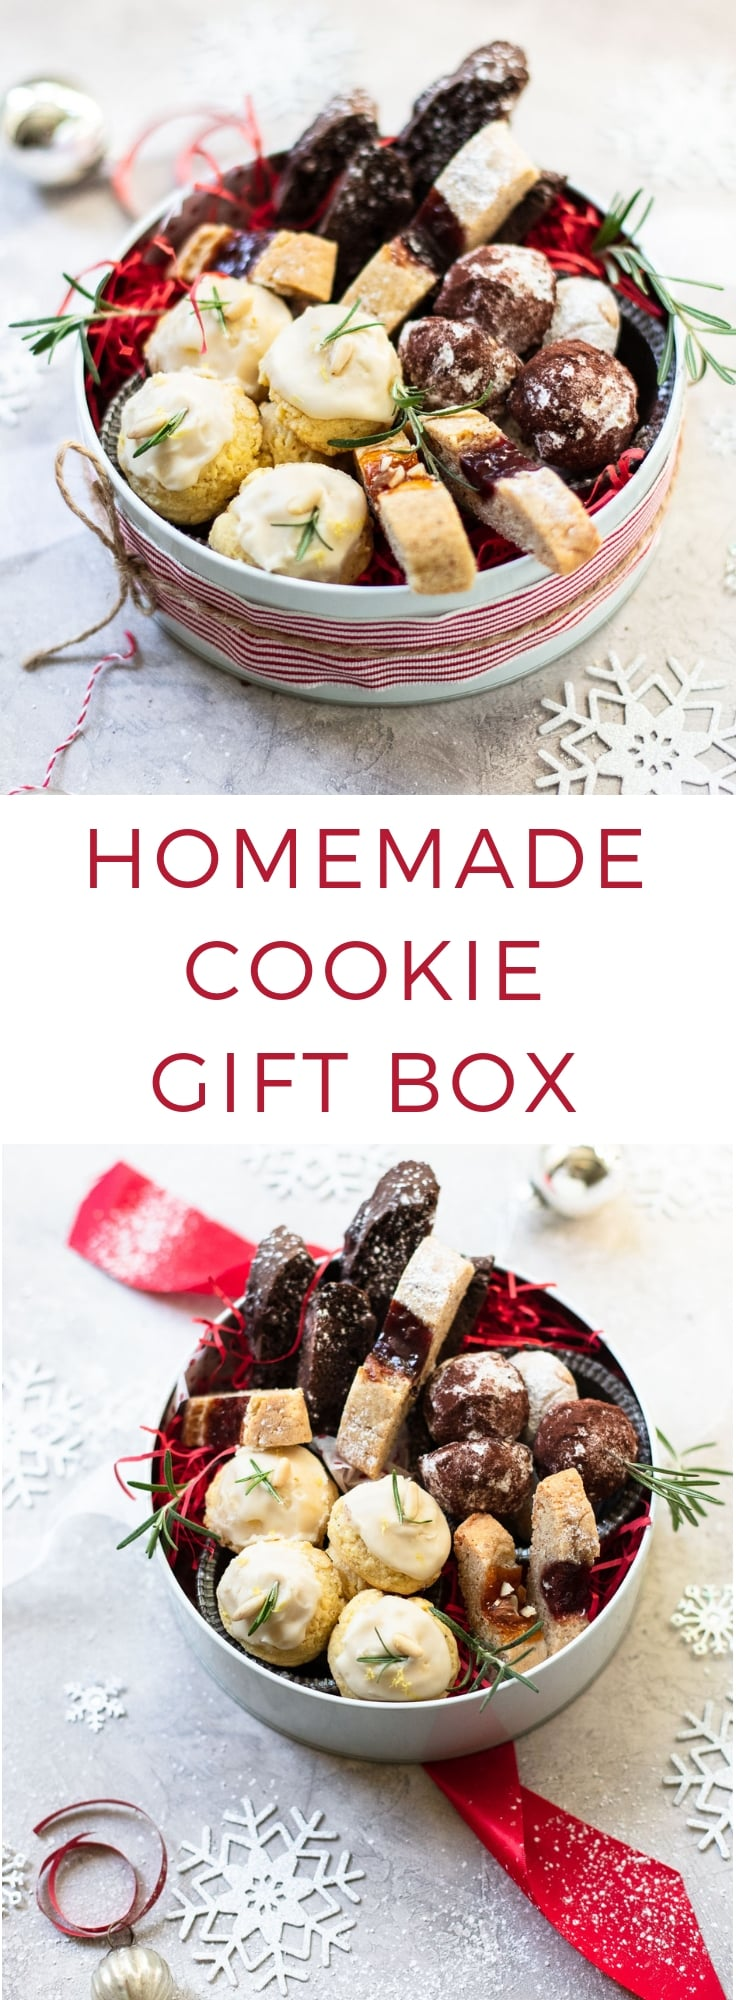 How to Make a Pretty Homemade Christmas Cookie Gift Box